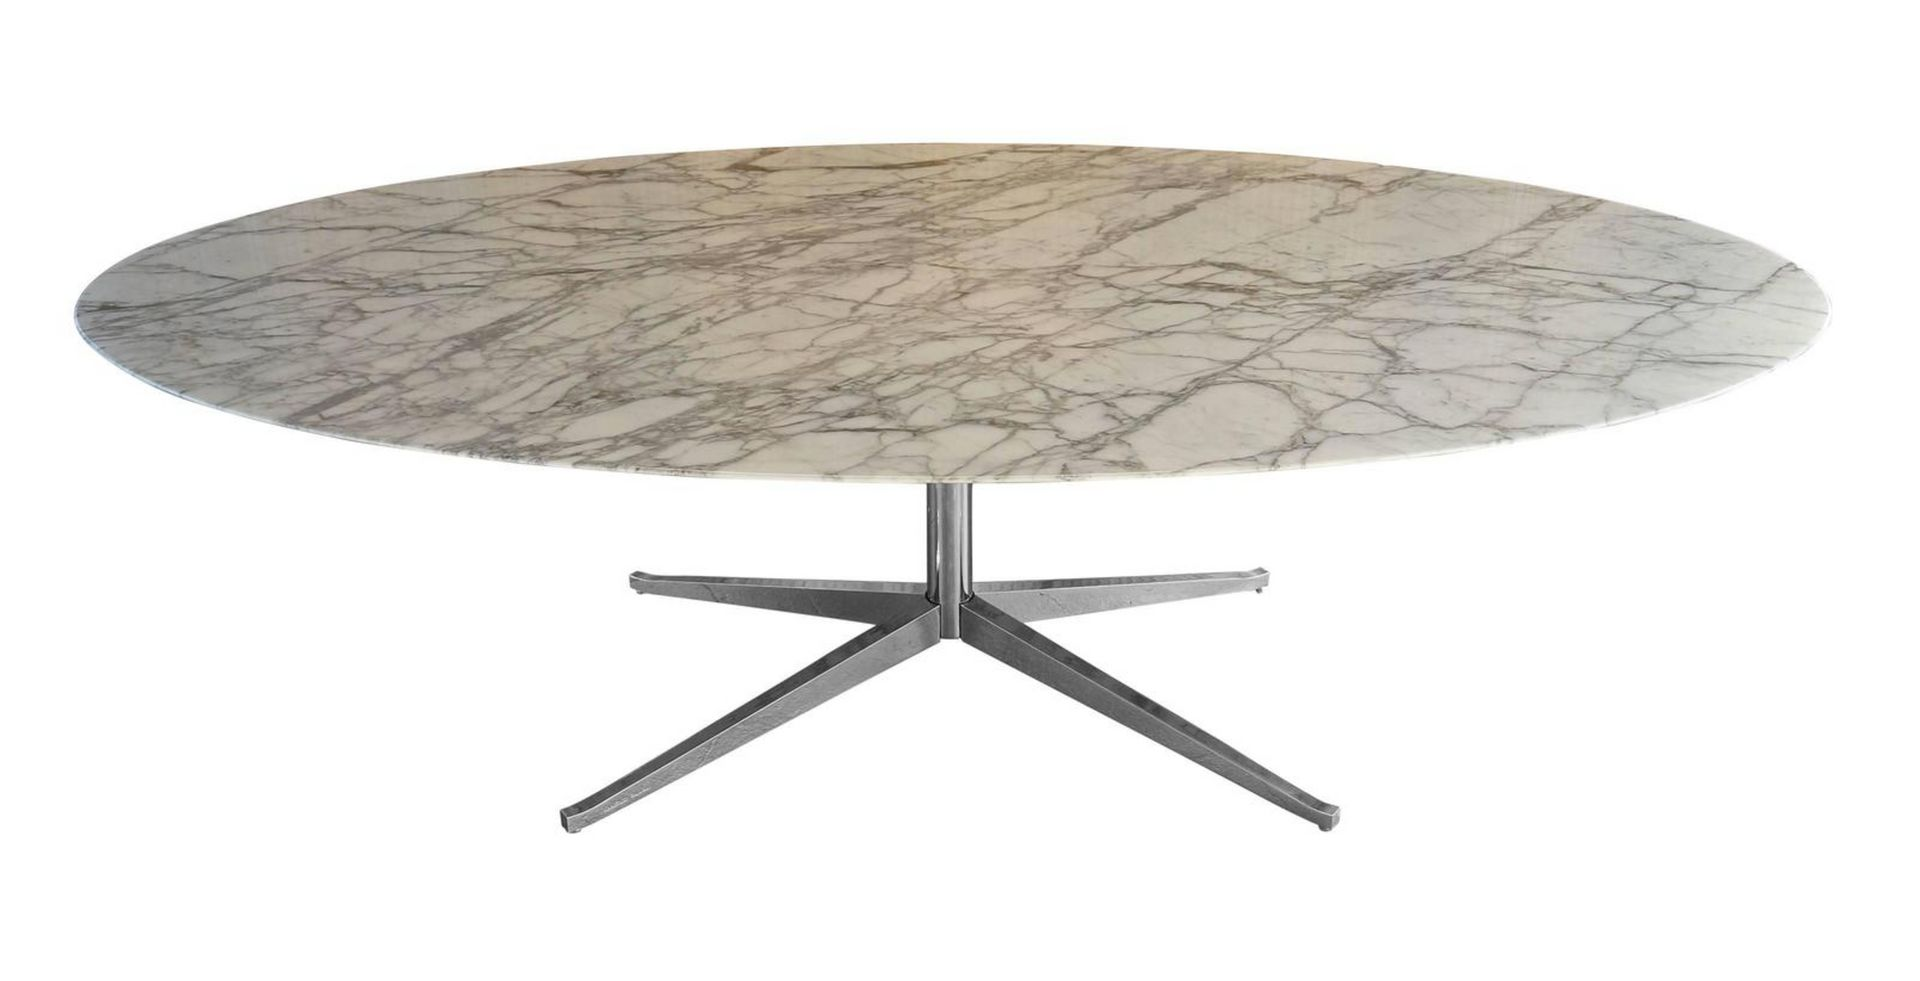 Table Knoll Ovale Occasion20170927052604 Tiawukcom : mid century white calacatta oval marble dining table from knoll 1 from tiawuk.com size 1920 x 980 png 930kB